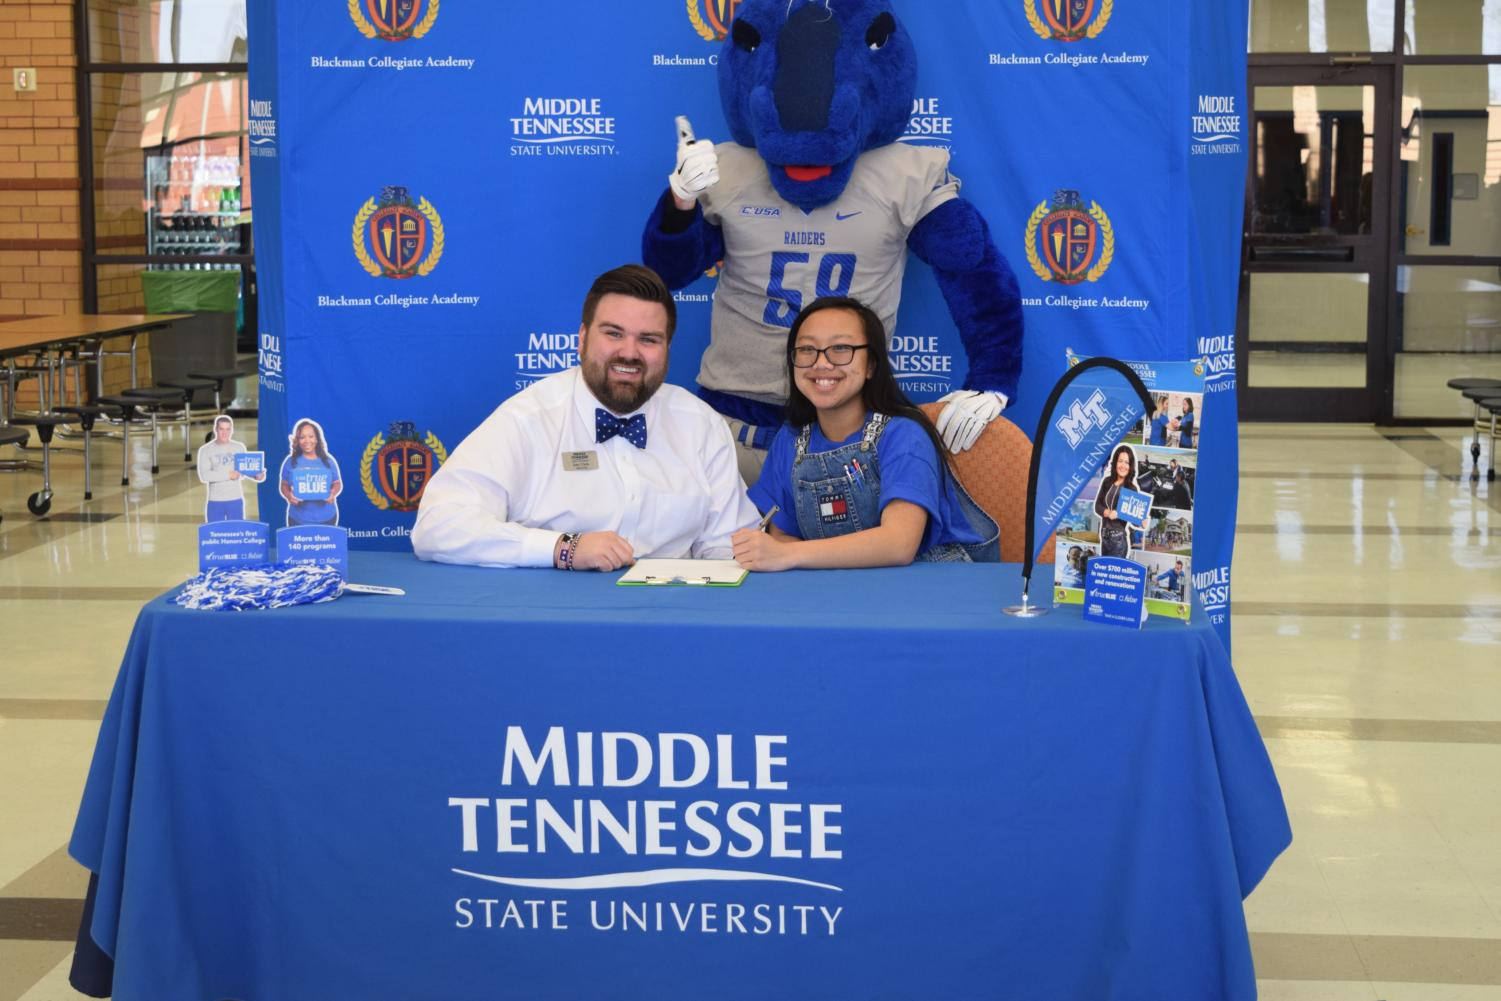 Sofija+Rajvong+will+attend++Middle+Tennessee+State+University+in+the+fall.